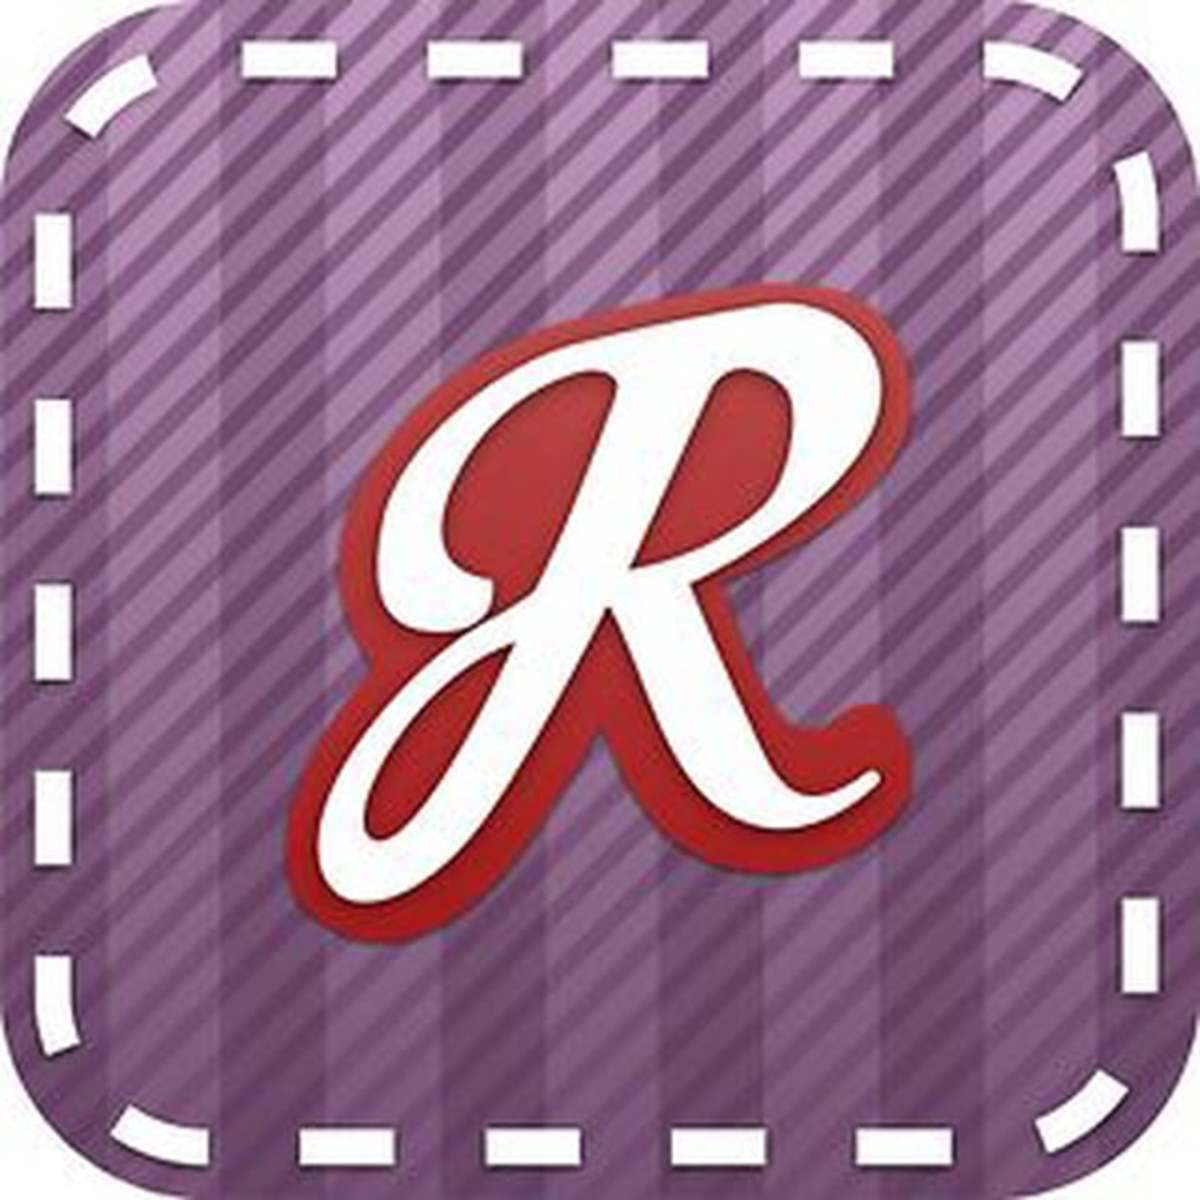 This app allows users to discover coupons and deals both in-store and online.